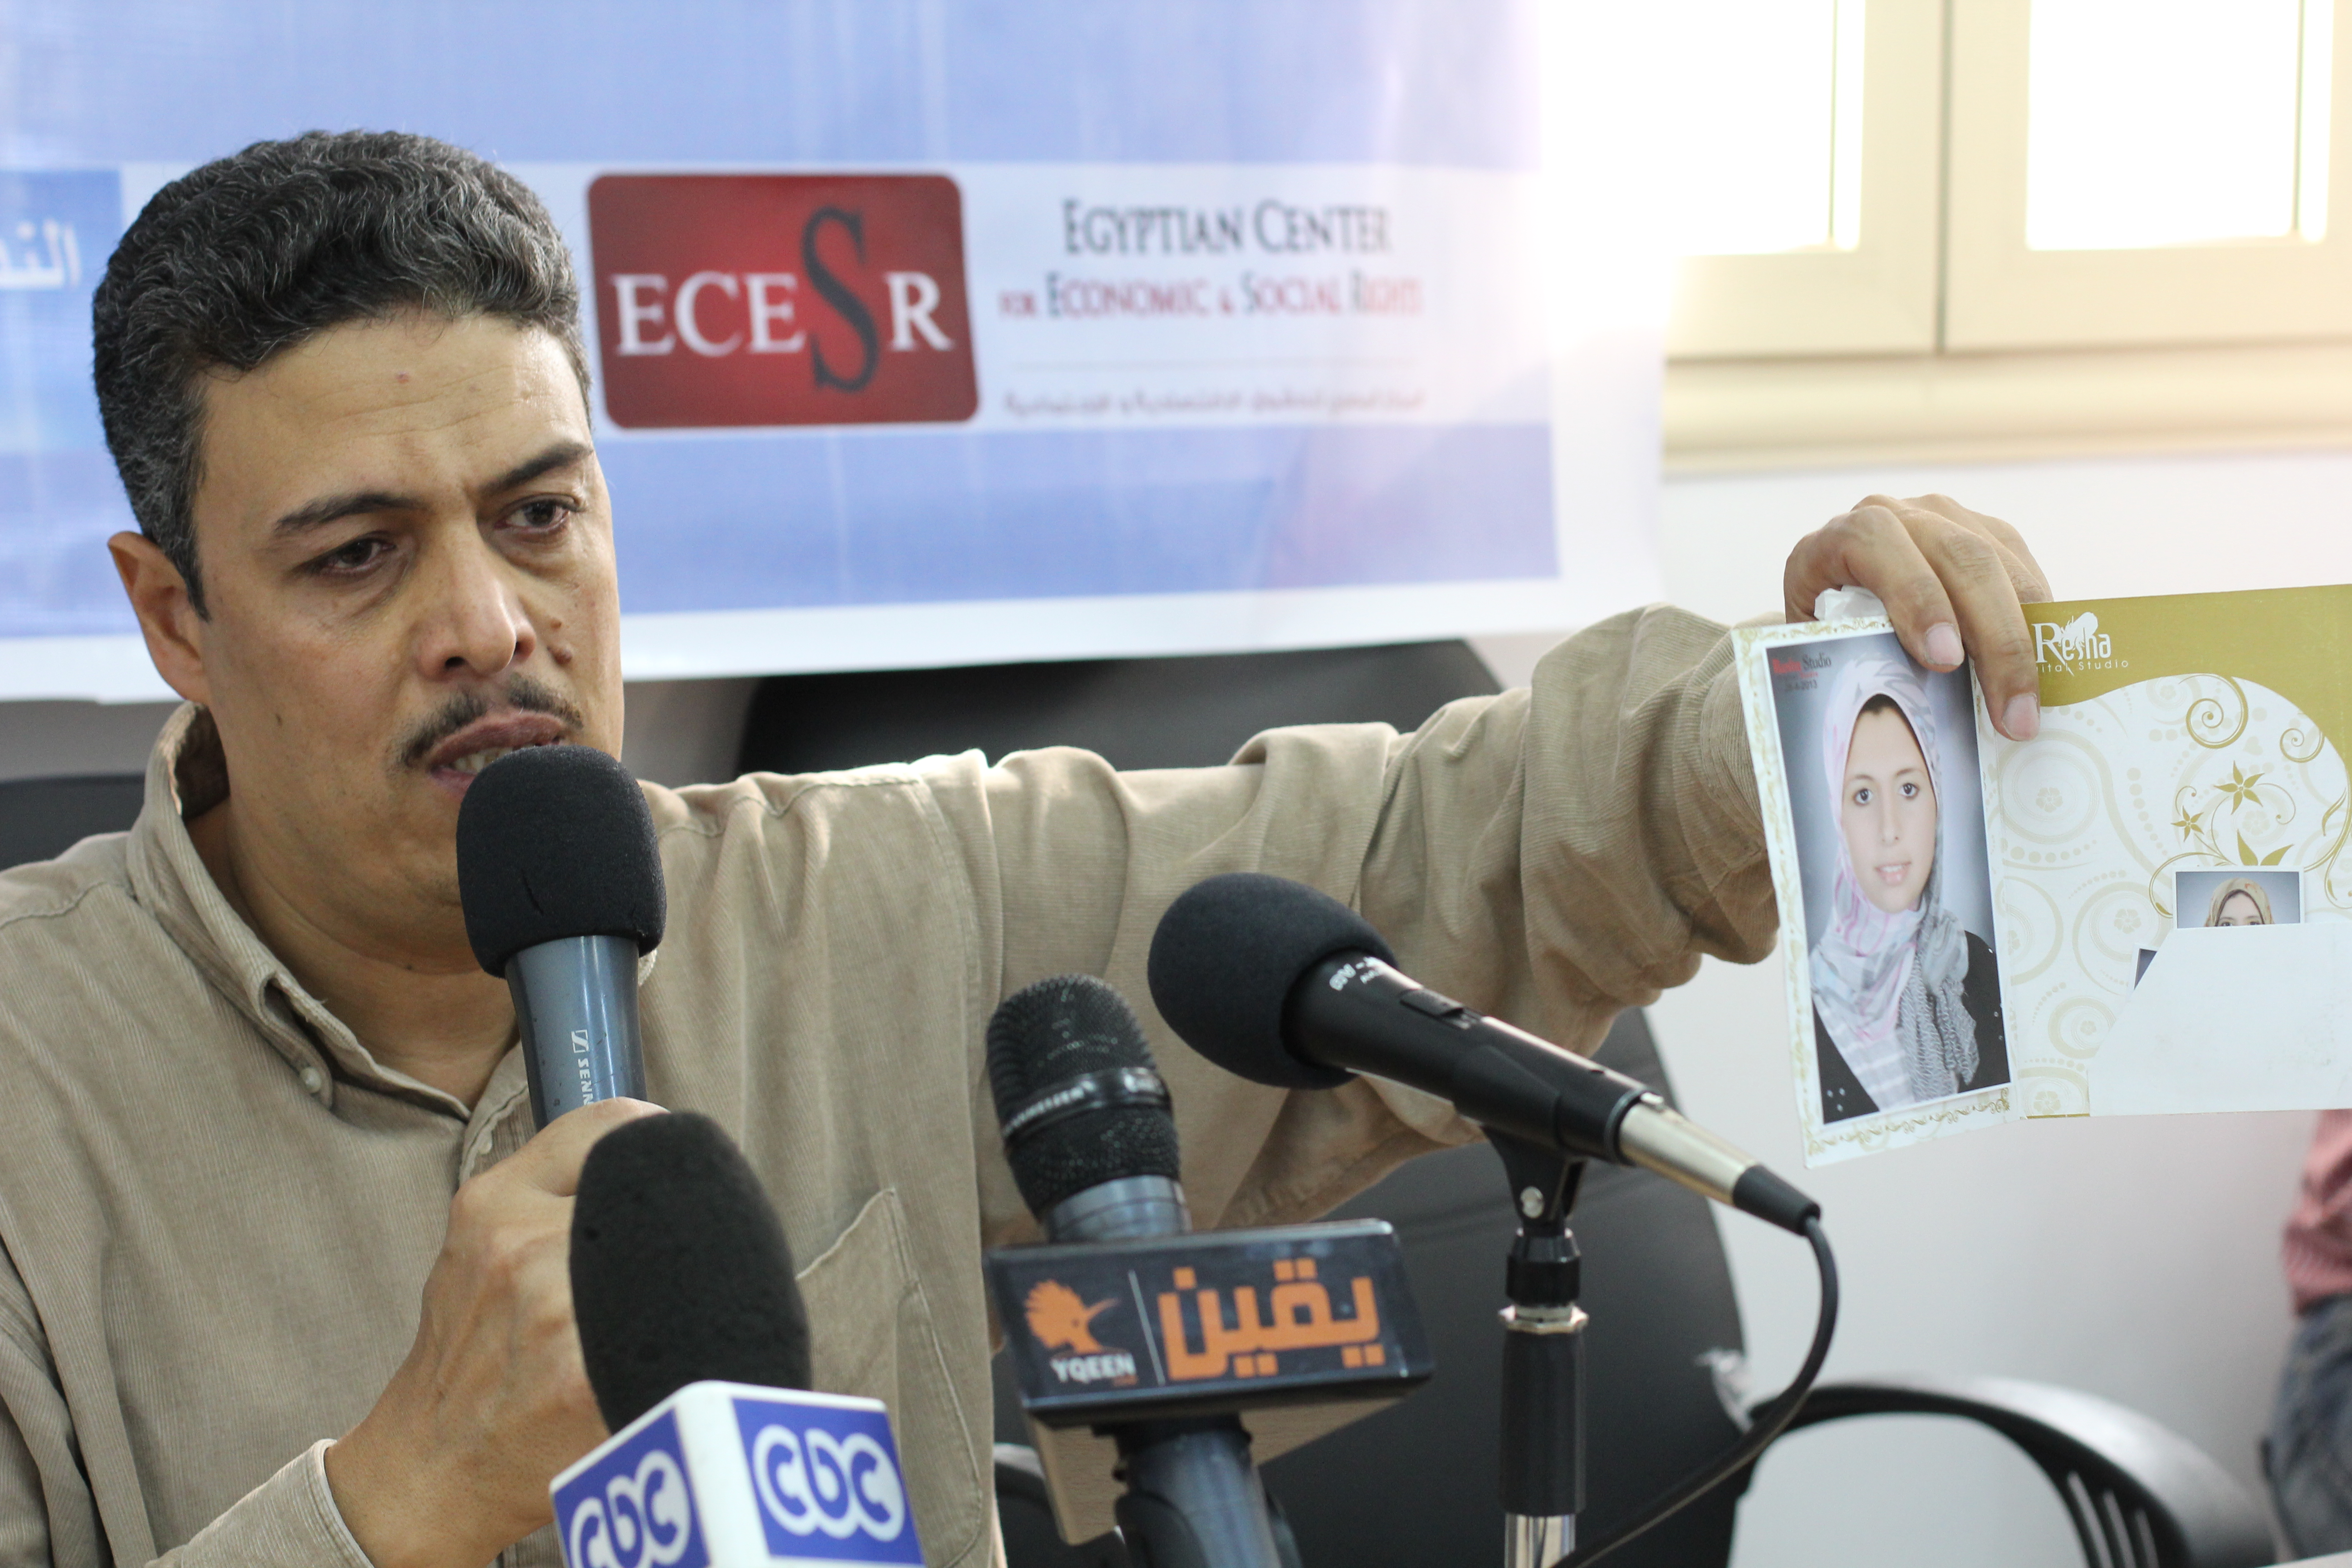 Ramadan Abdel Hamid, father of formerly detained Rawda, holds a picture of his daughter during the press conference held by EIPR, denouncing her detainment  (Photo by Fady Ashraf)